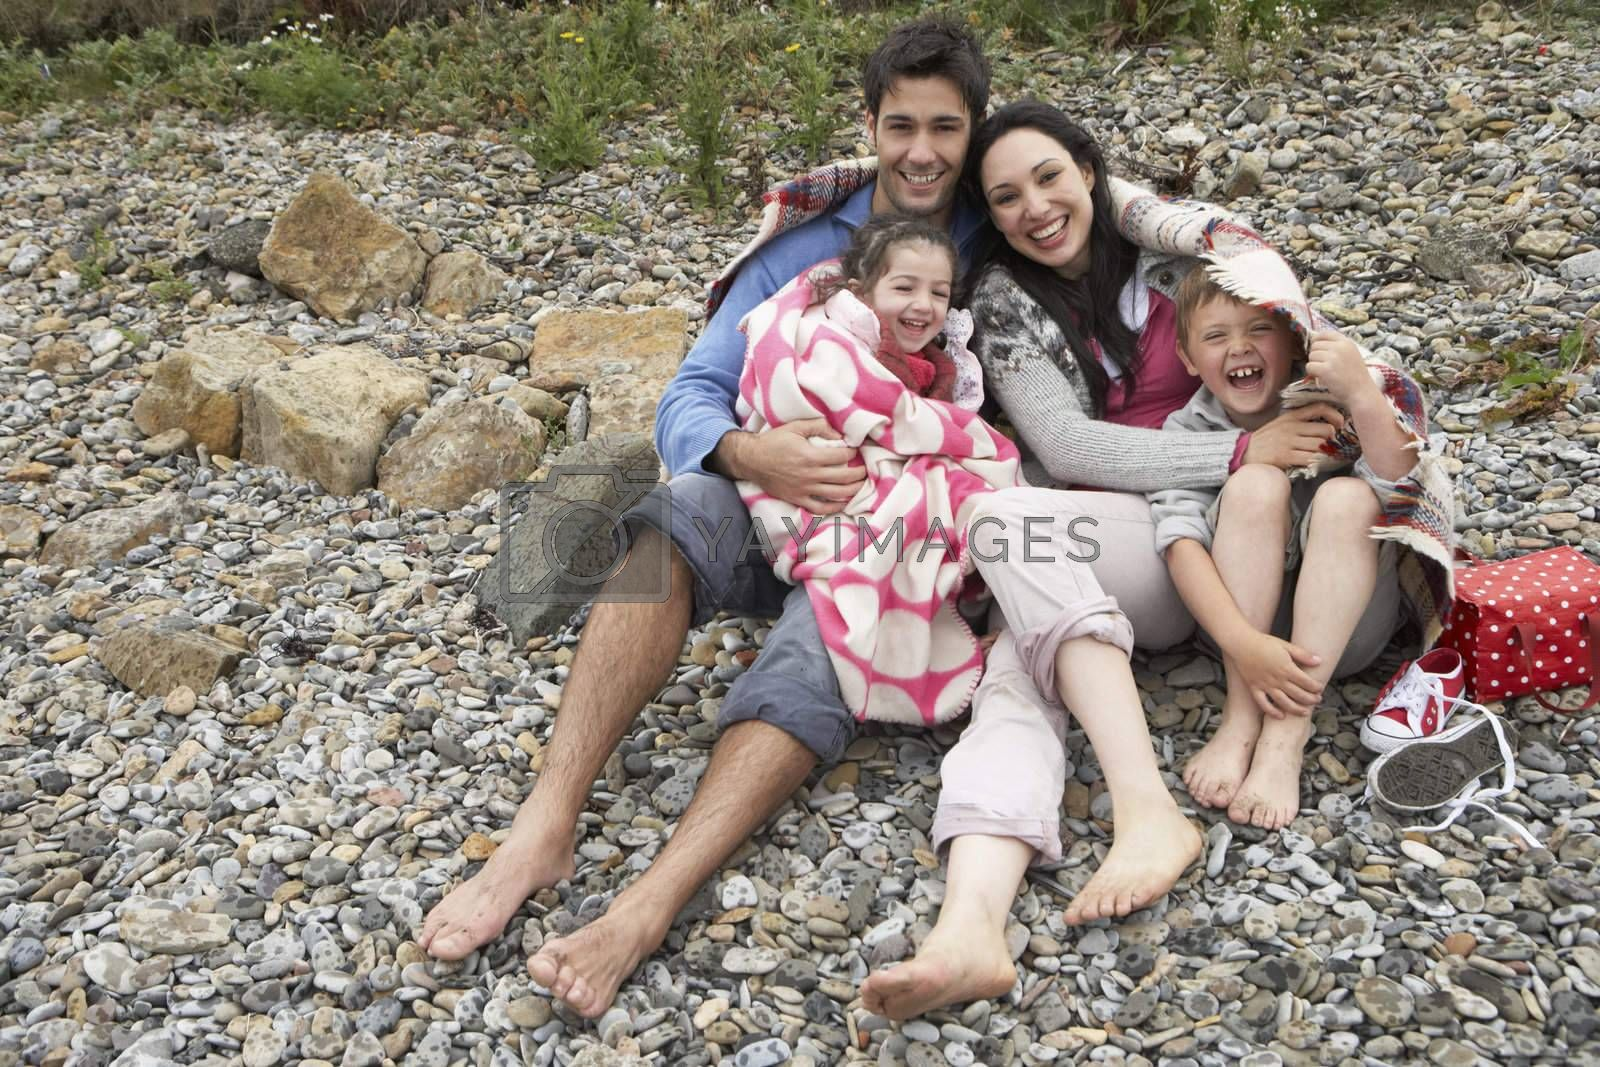 Royalty free image of Family on beach with blankets by omg_images